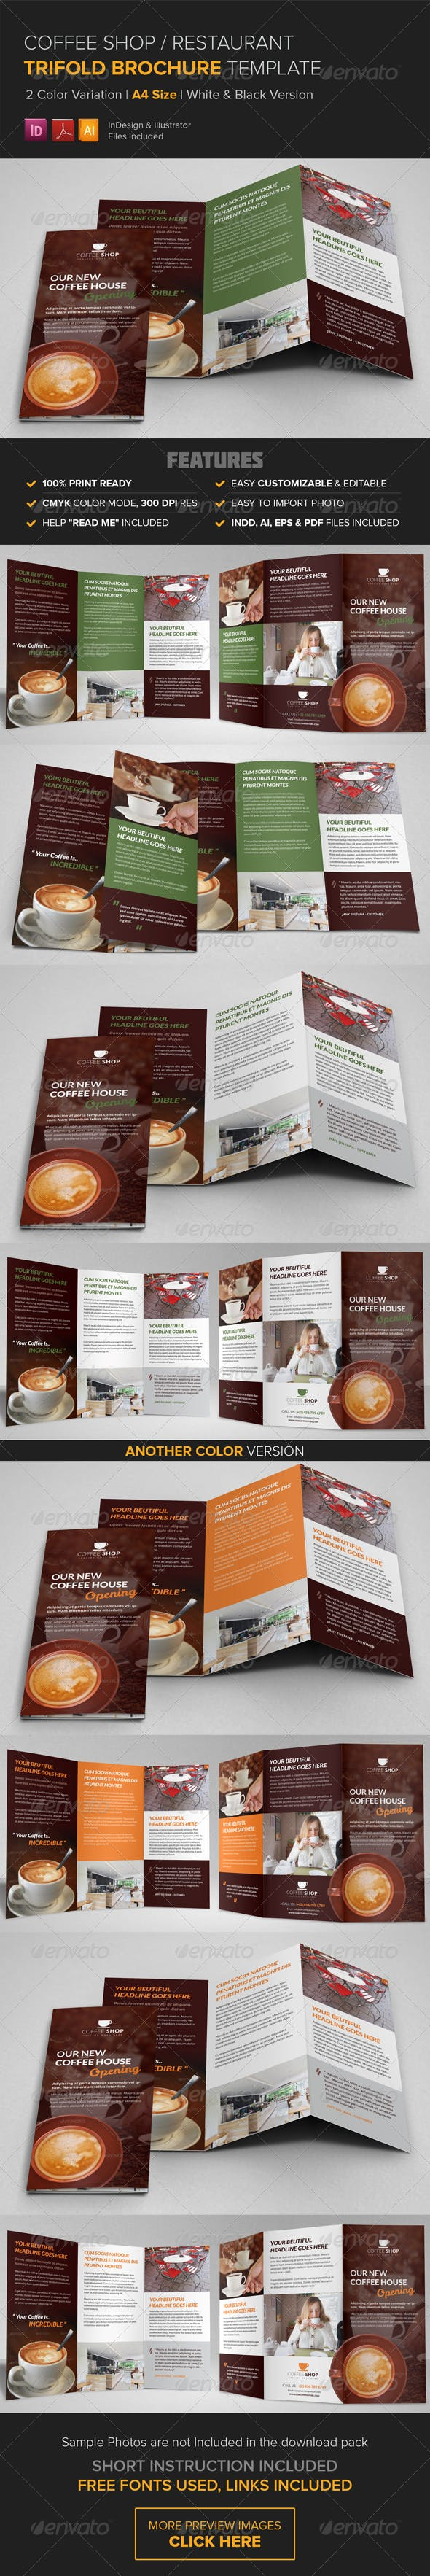 coffee shop restaurant trifold brochure template by